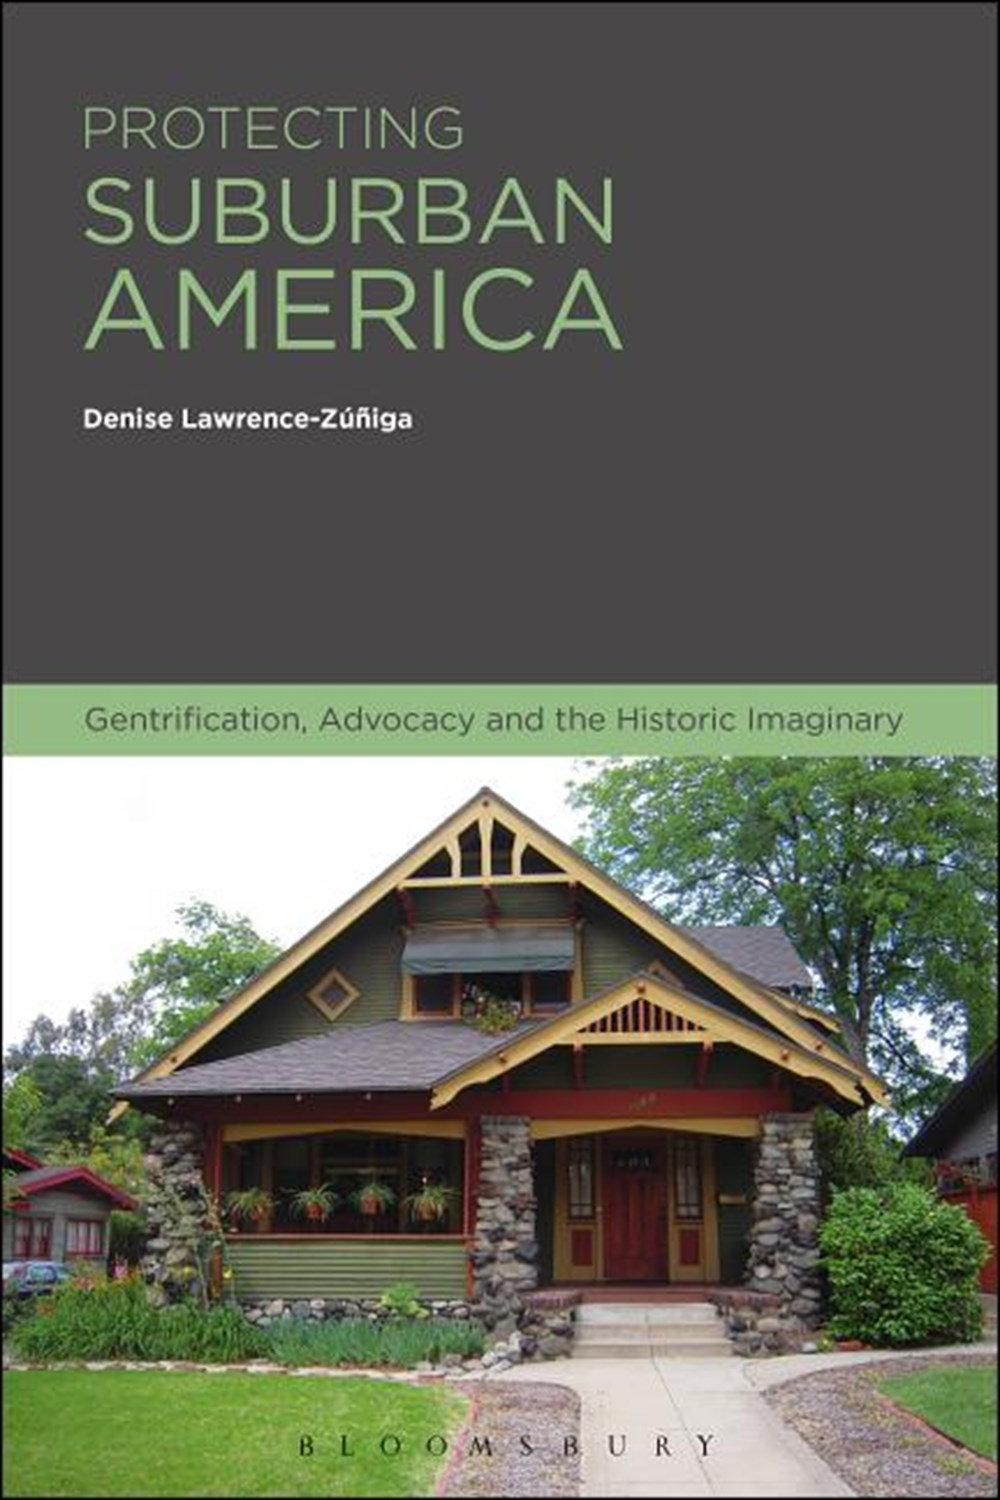 Protecting Suburban America Gentrification, Advocacy and the Historic Imaginary